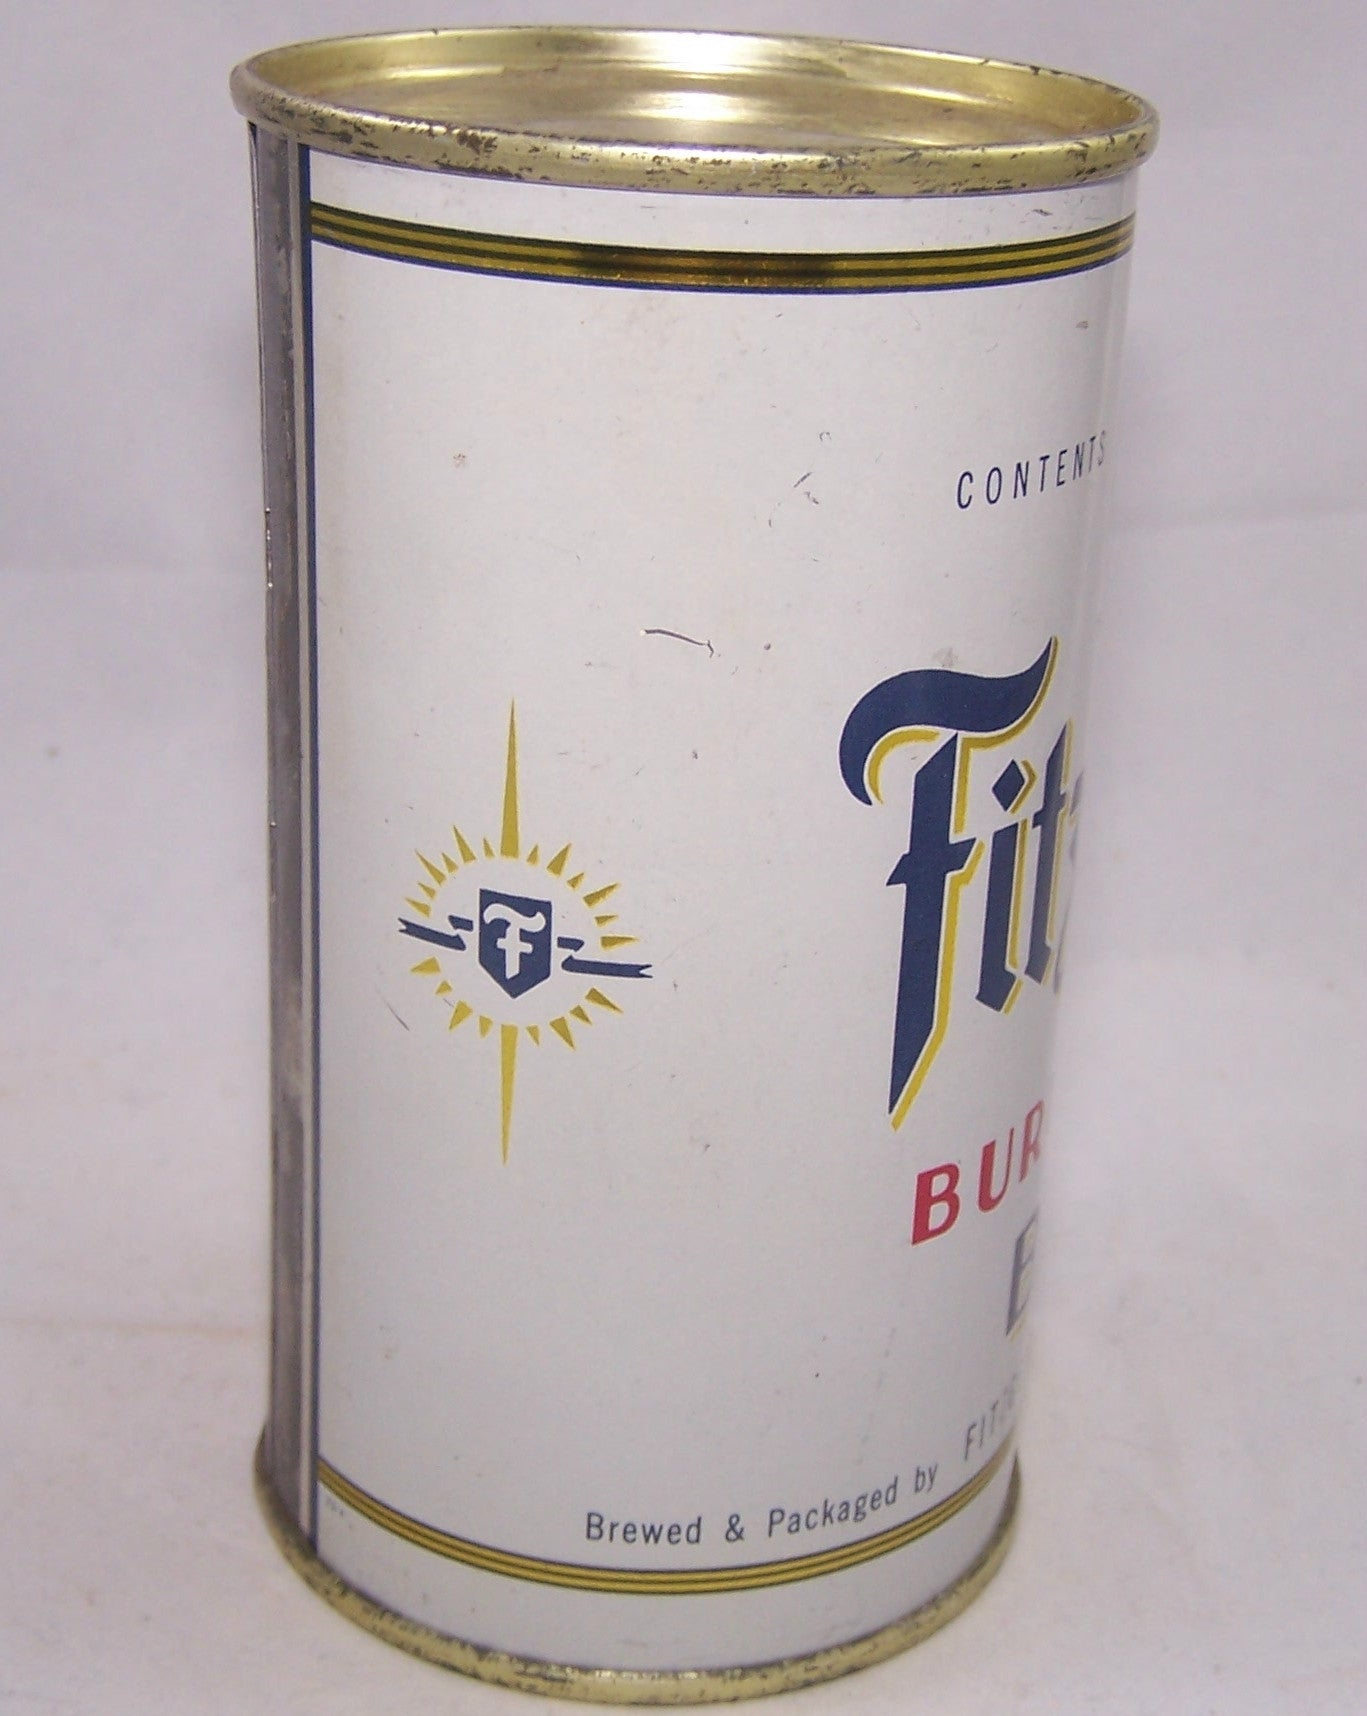 Fitzgerald's Burgomaster Beer, USBC 64-18, Grade 1/1+ Sold on 06/27/17